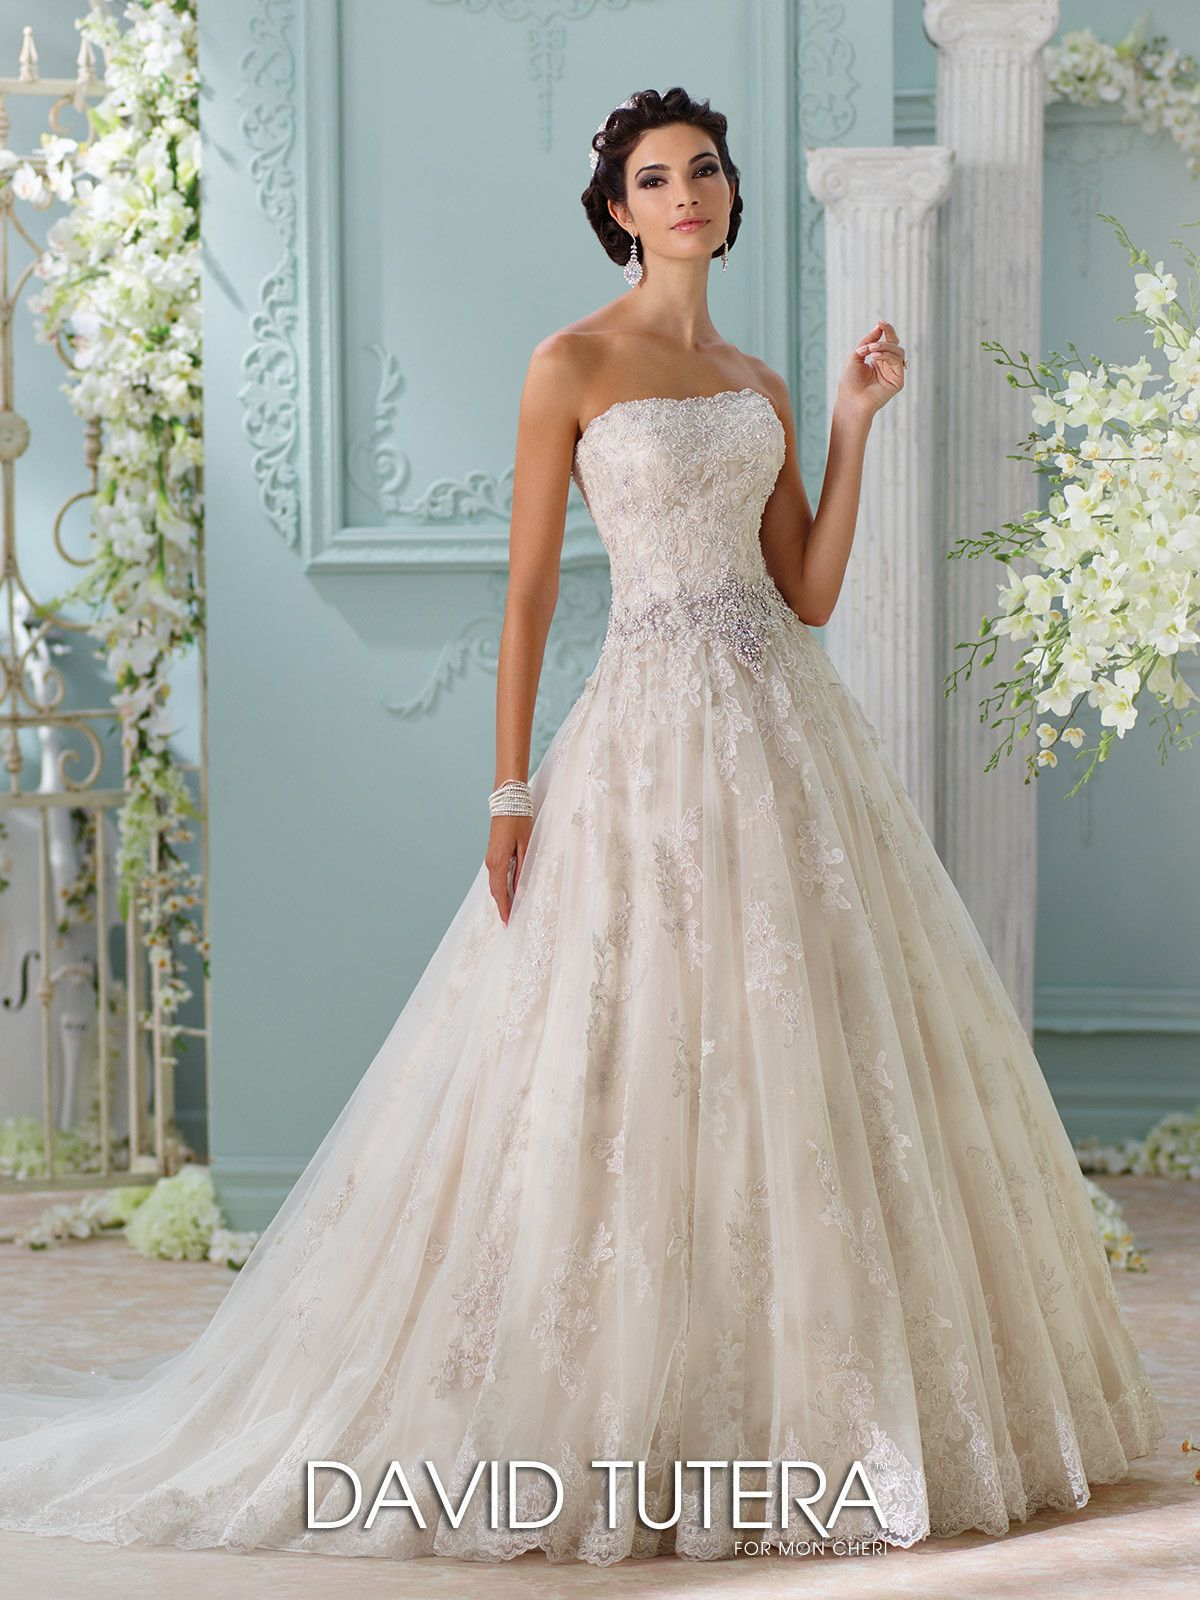 David tutera couture jelena 116230 all dressed up bridal david tutera couture jelena 116230 all dressed up bridal gown ombrellifo Images